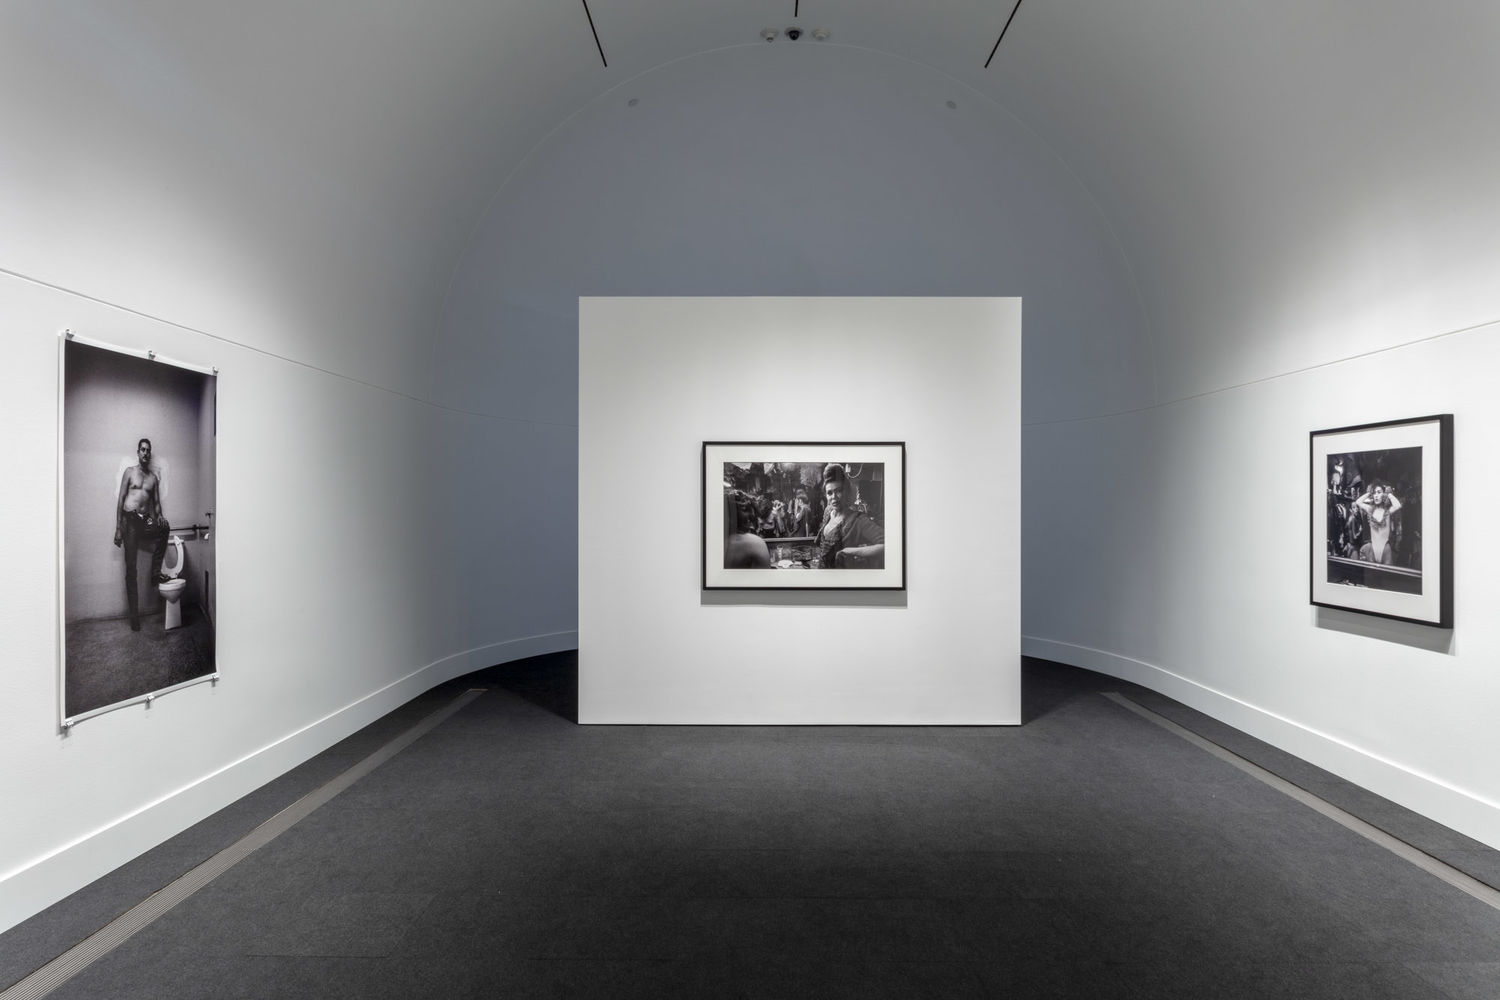 A white gallery with a curved back wall with one black and white photographs hanging on the wall at right, one hanging on the wall to the left, and one on a free-standing wall near the back of the room.